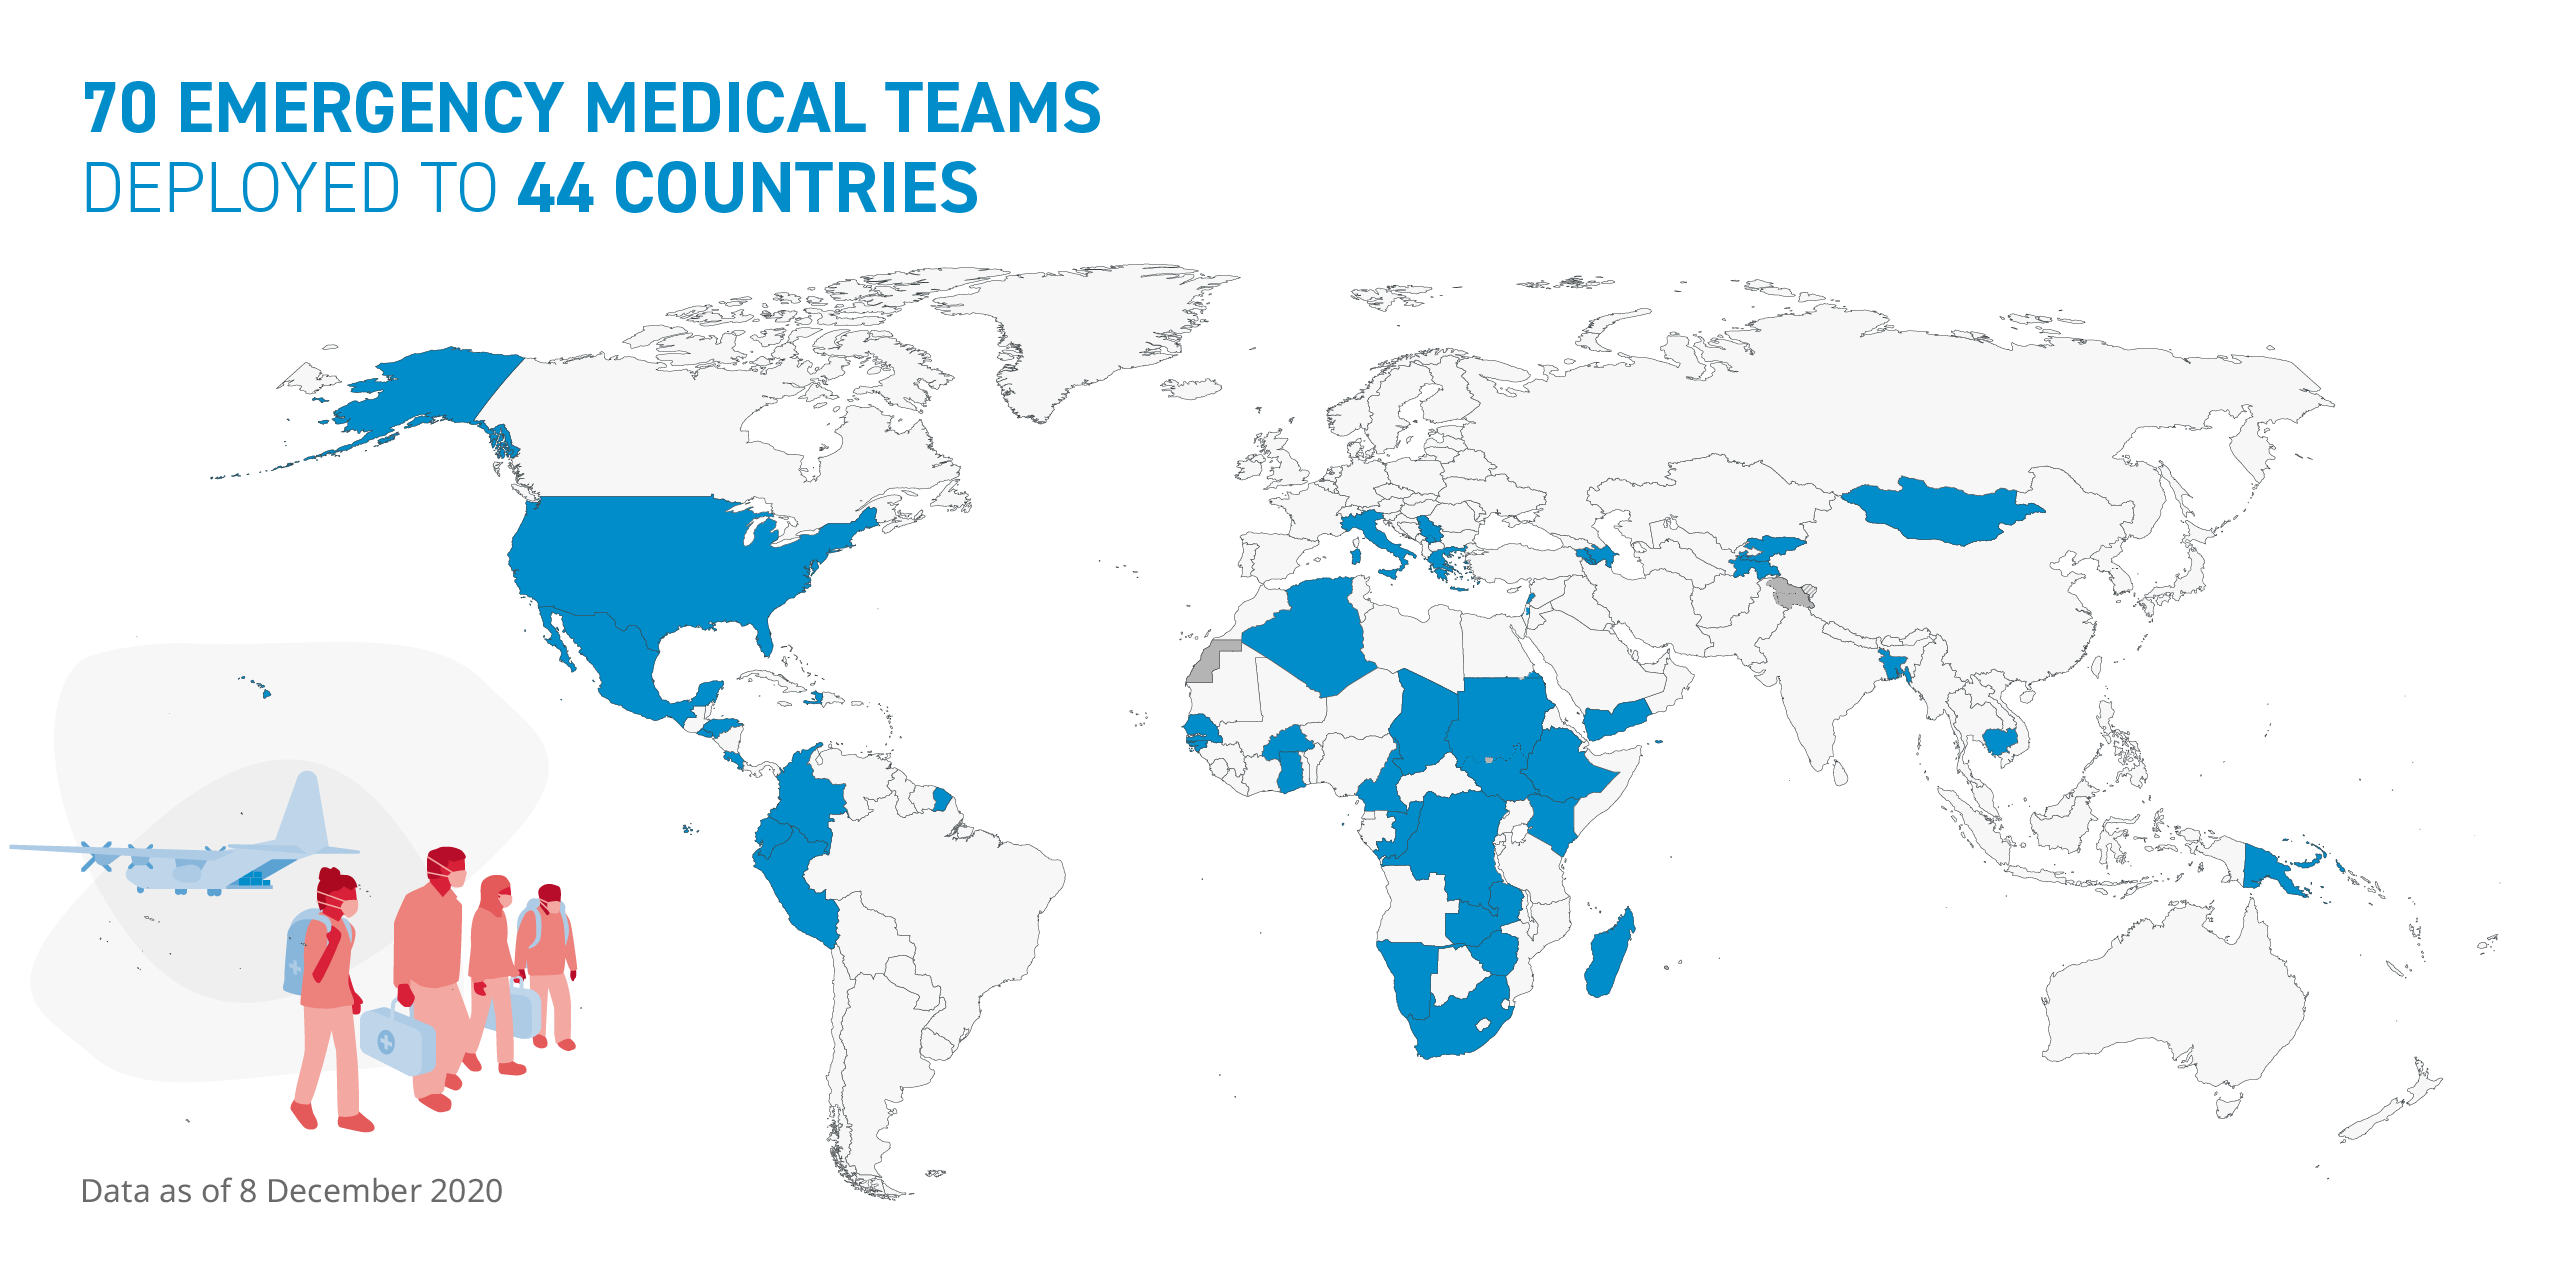 70 Emergency Medical Teams were deployed to 44 countries in 2020